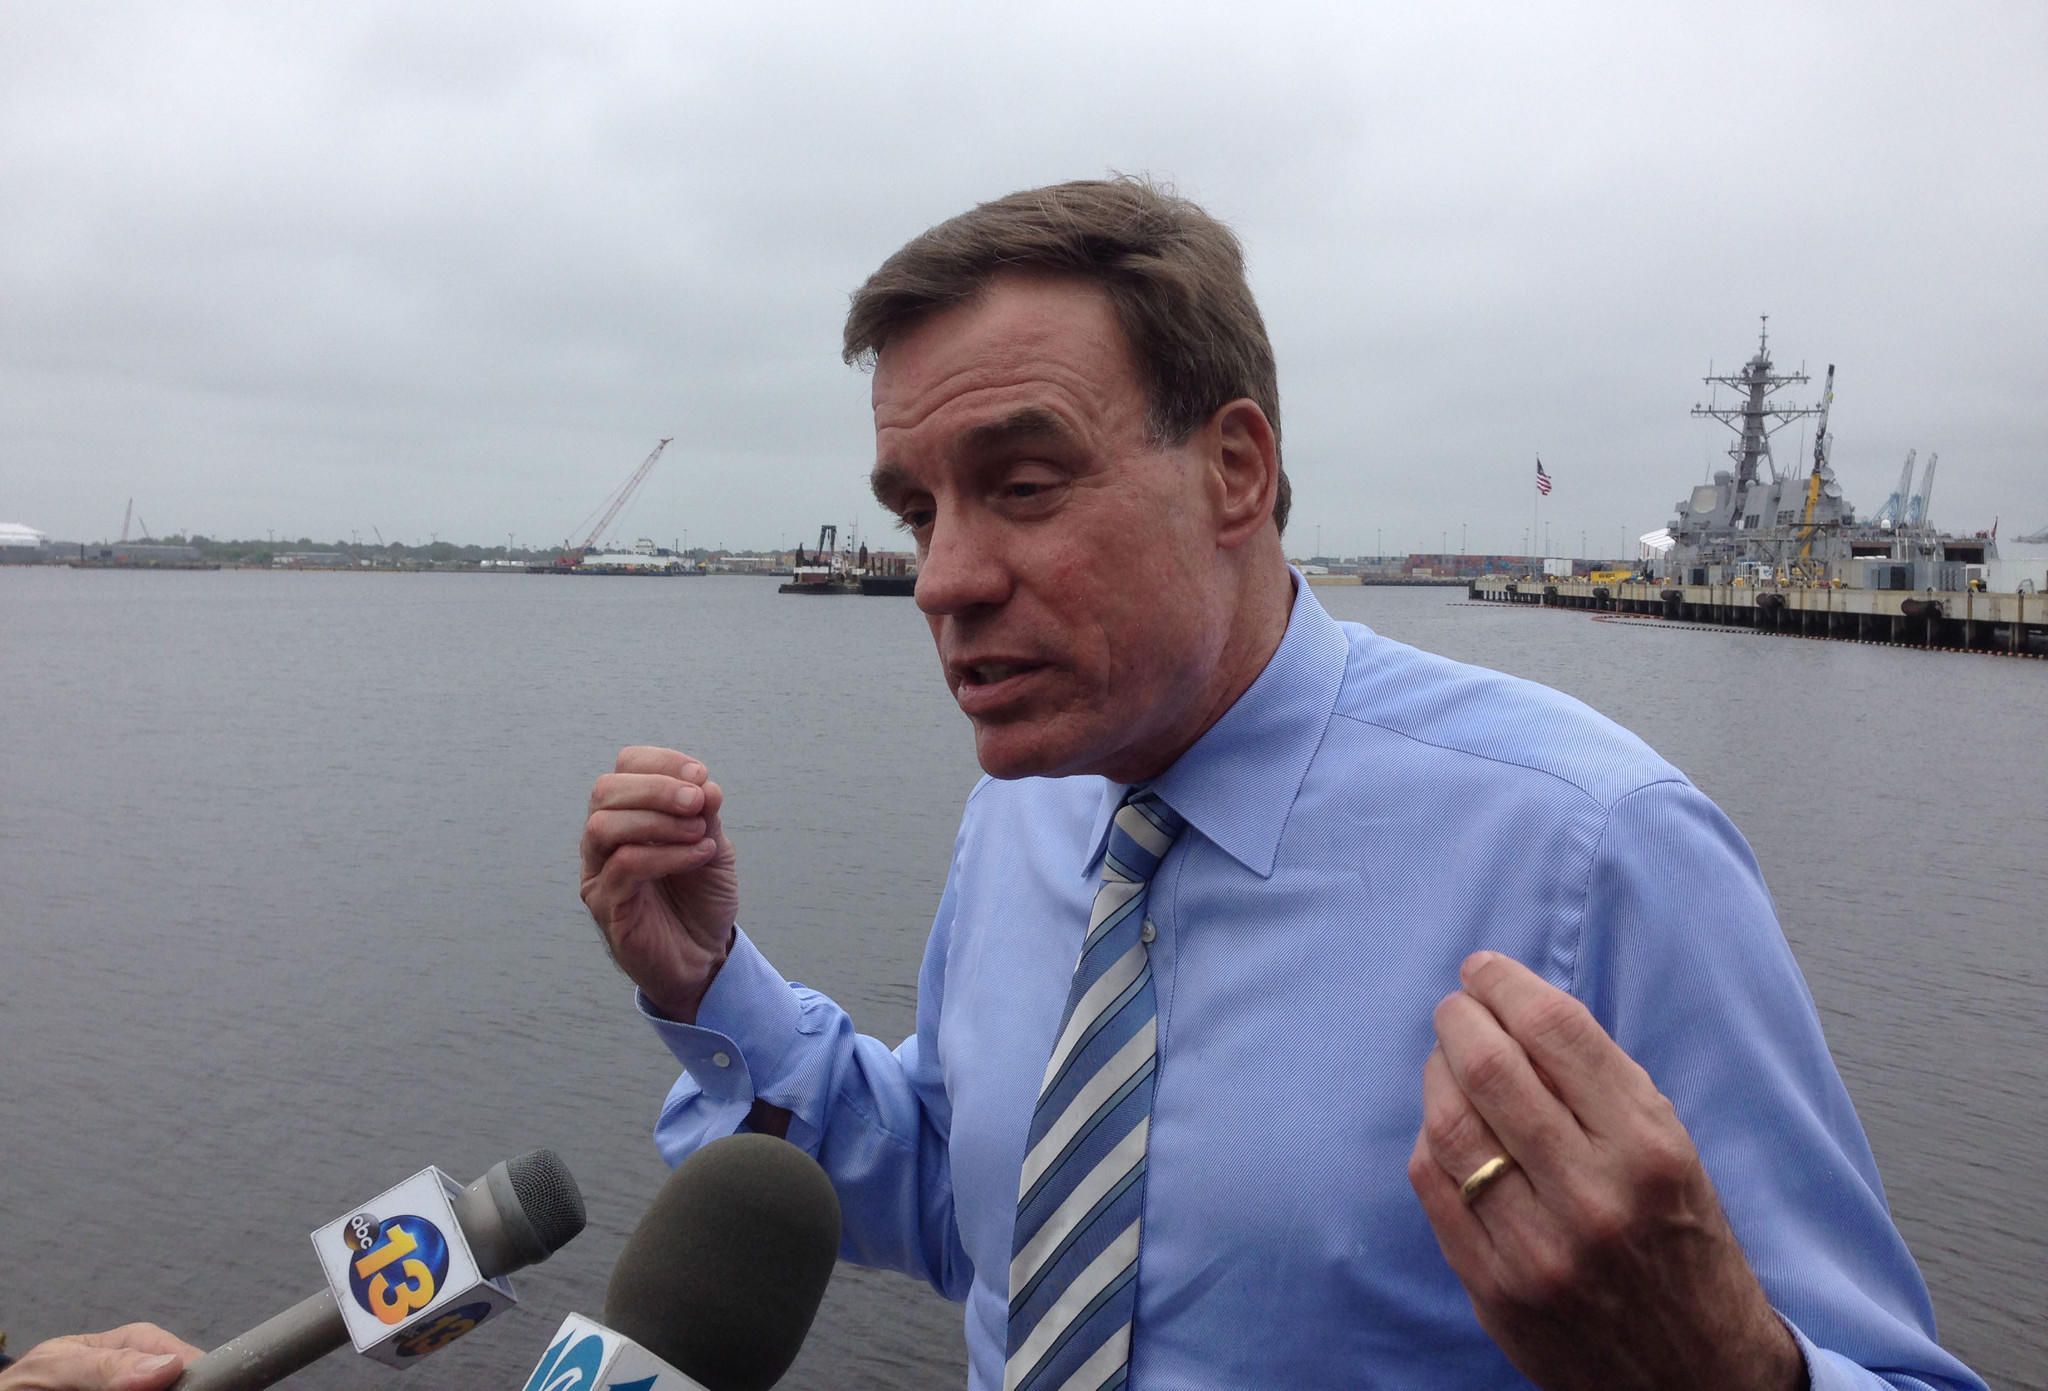 In this file photo, Sen. Mark R. Warner speaks to reporters at a campaign stop in Norfolk about his decision to call for the resignation of Veterans Affairs Secretary Eric Shinseki.